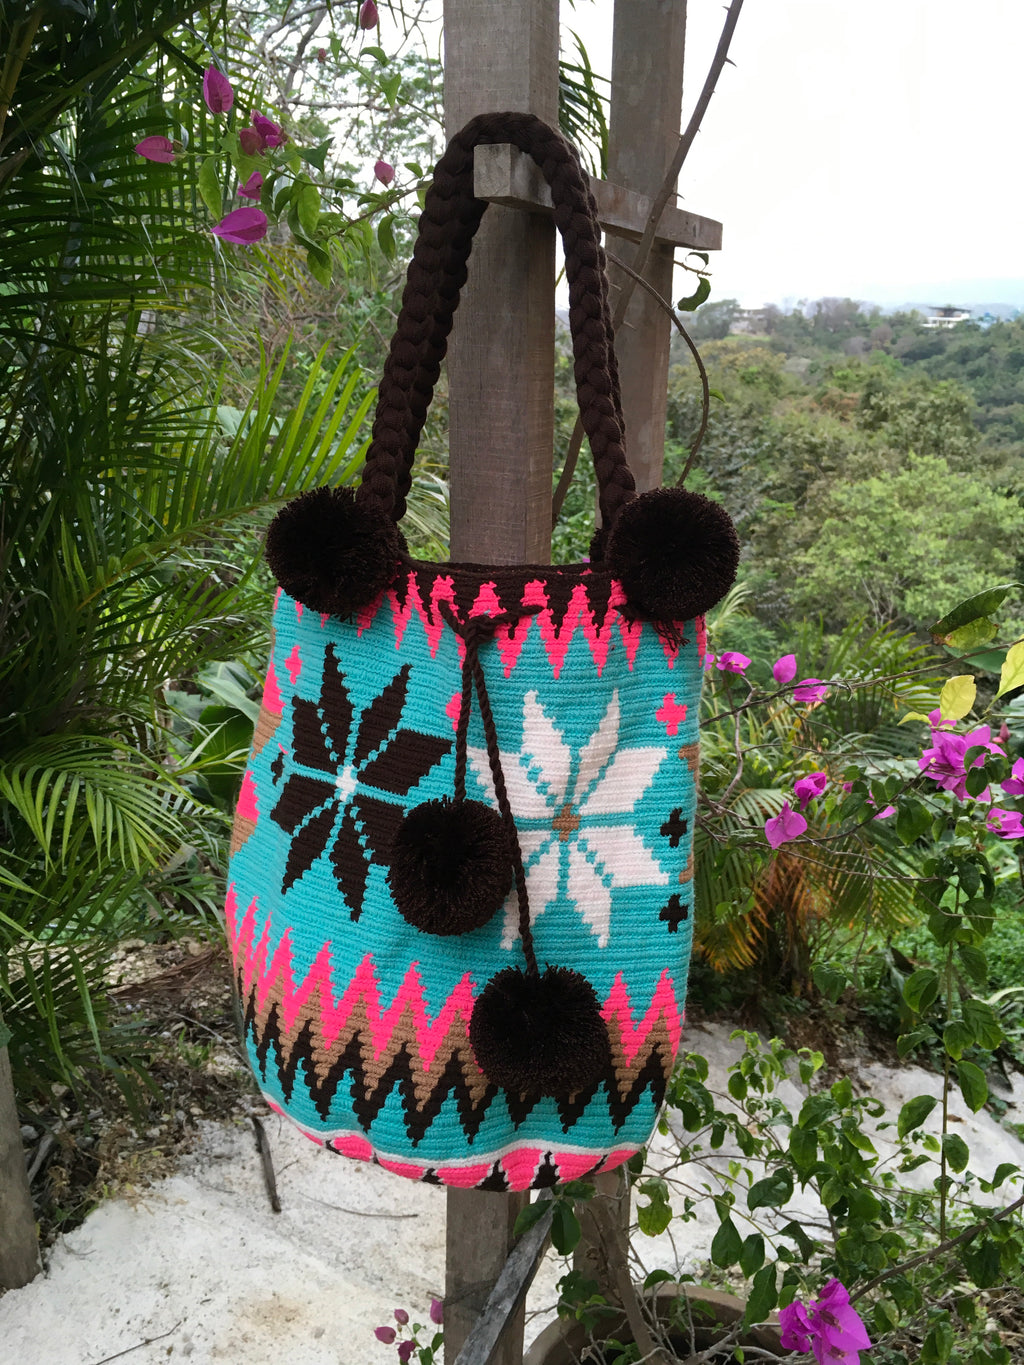 Mochila Turquoise Flower Design Large Pom Pom Braid-Jenstones Jewelry